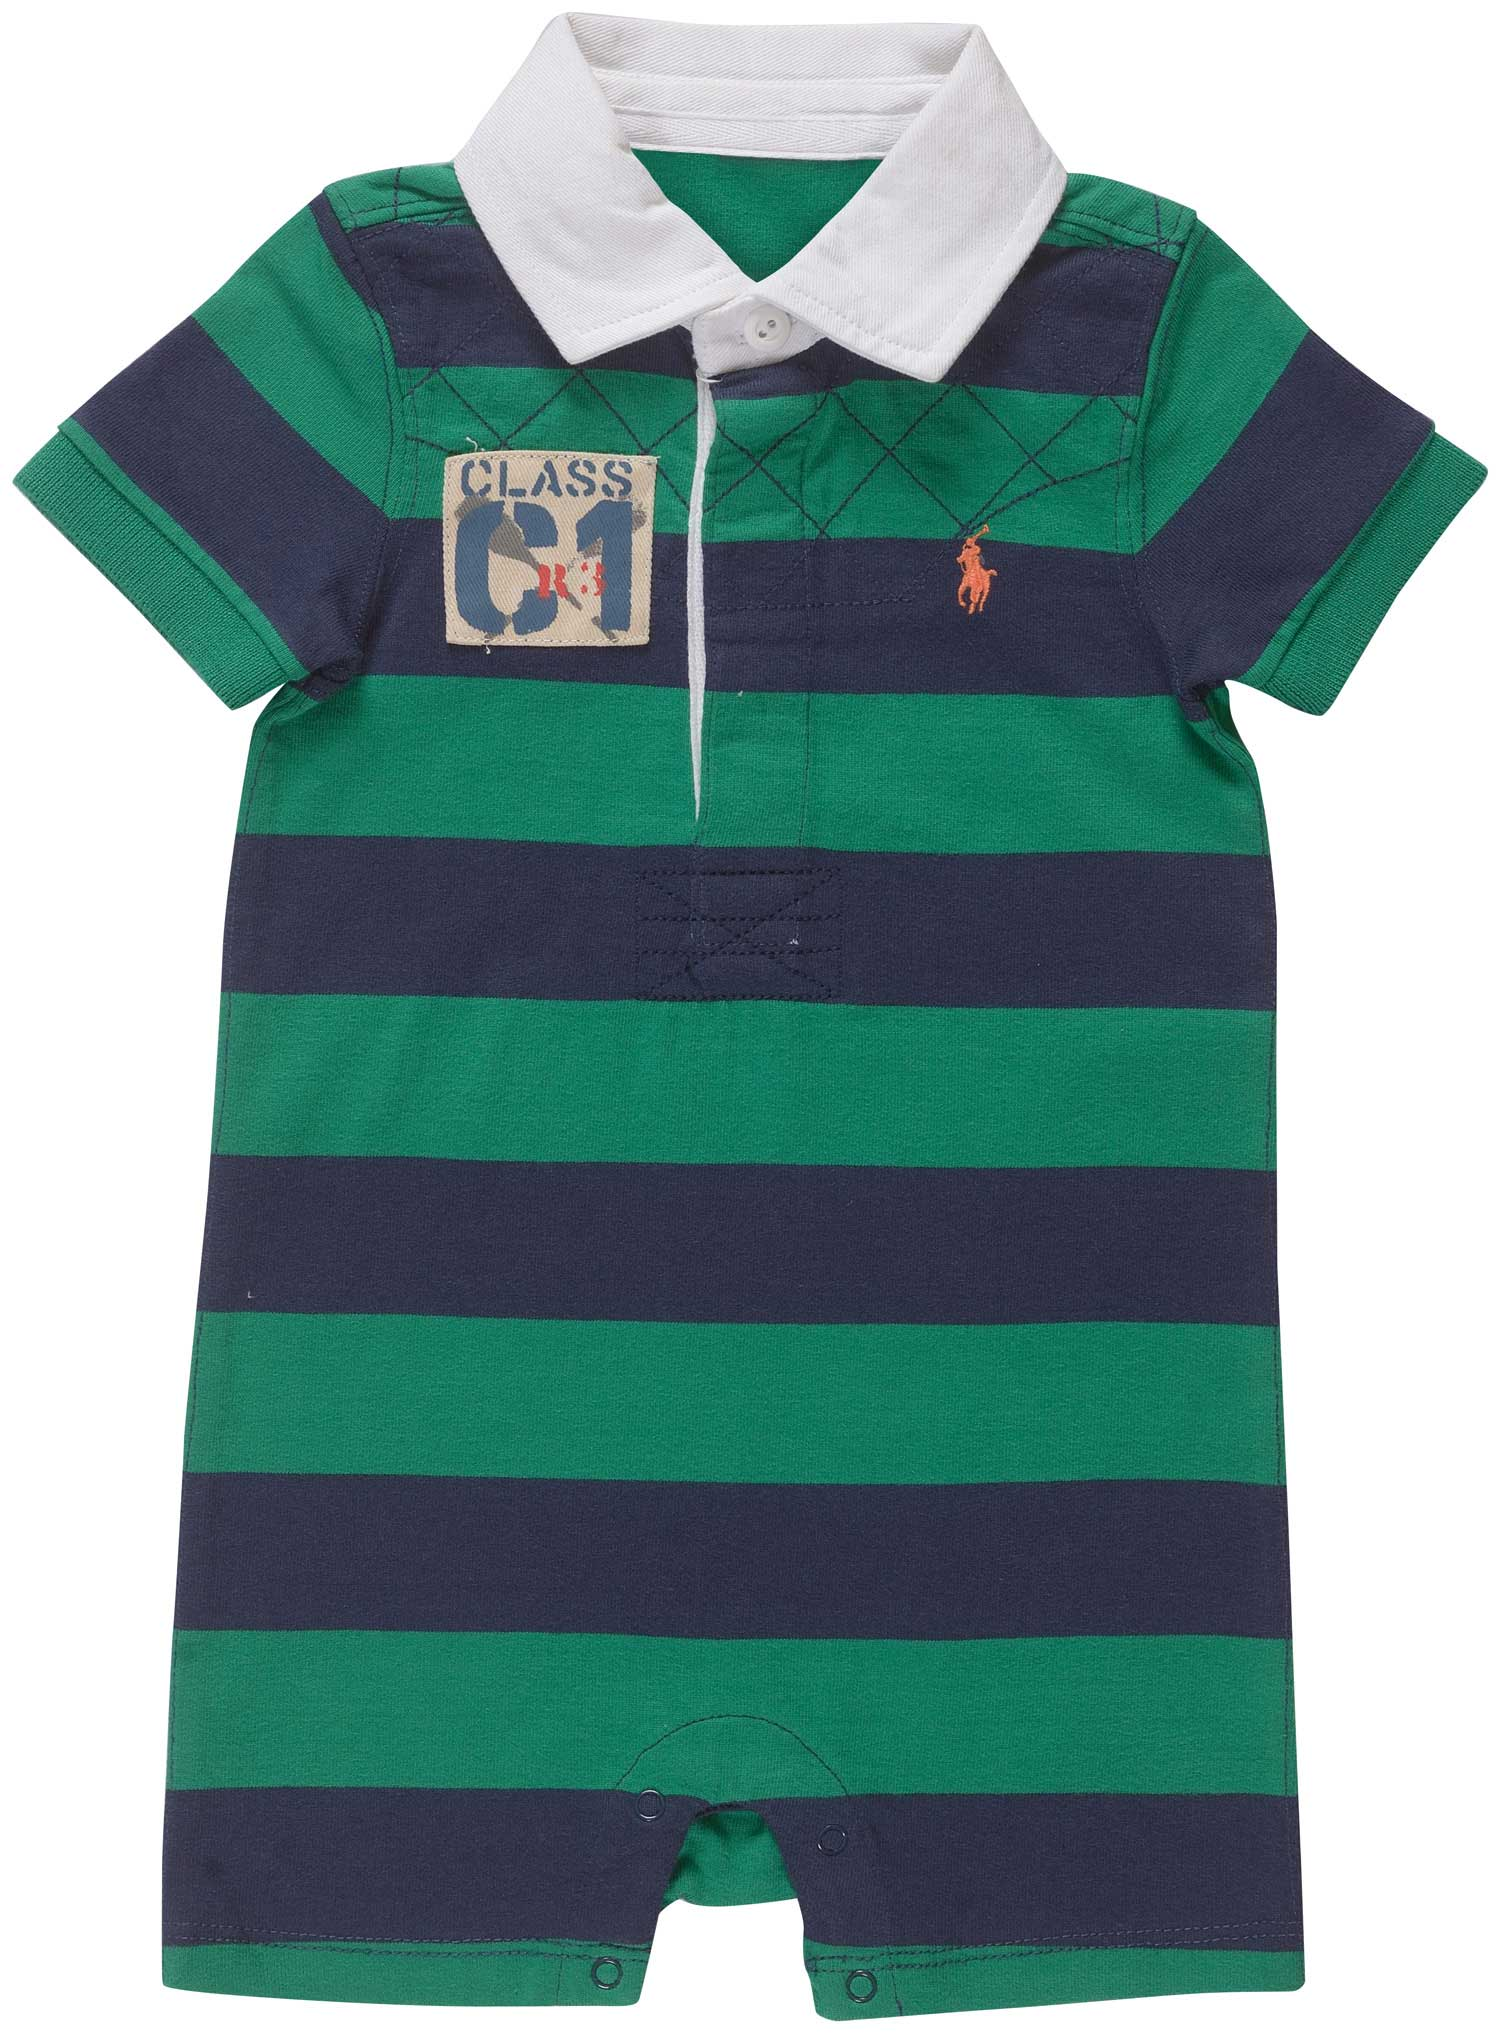 Kids Wear Tirupur Baby Clothes in Tirupur Baby Wear Manufacturers